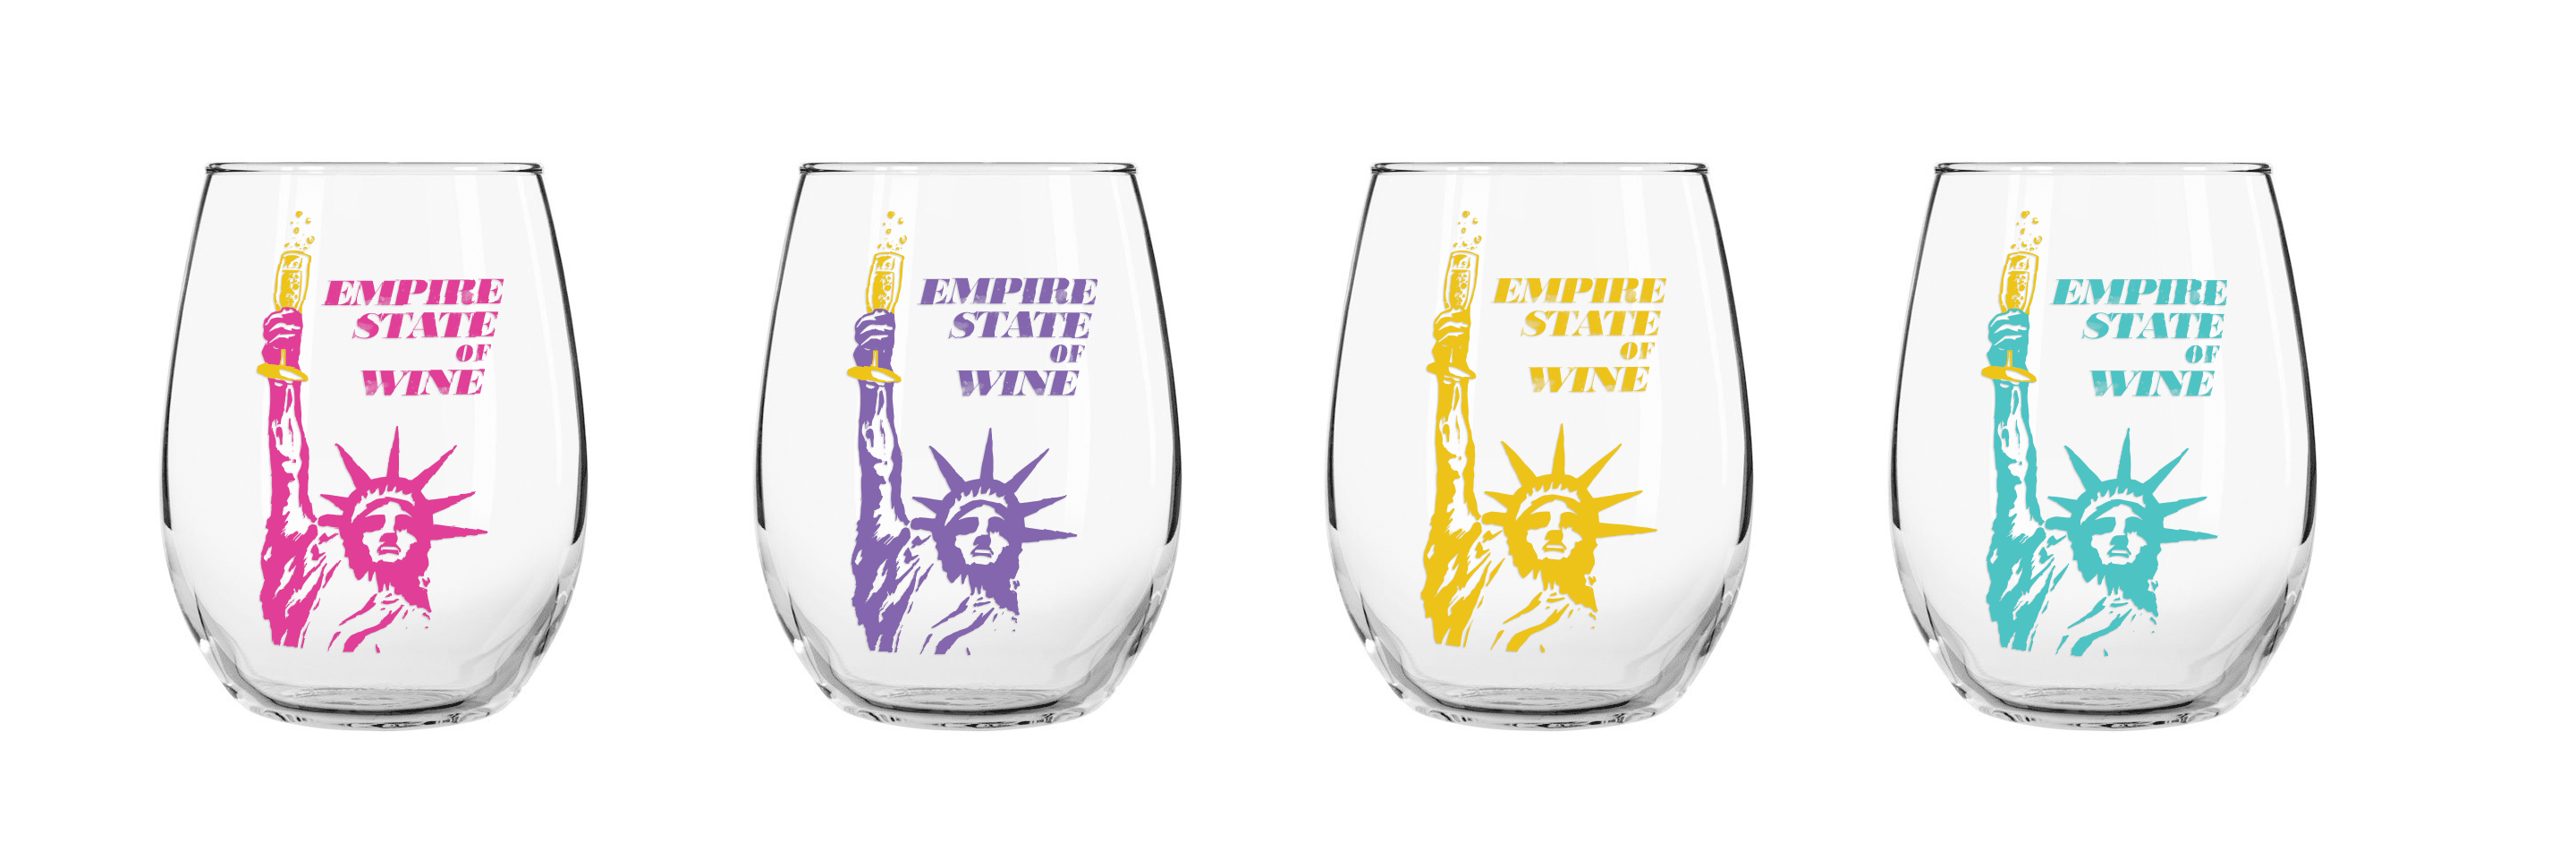 Empire State of Wine Glasses by Bionic Egg Design